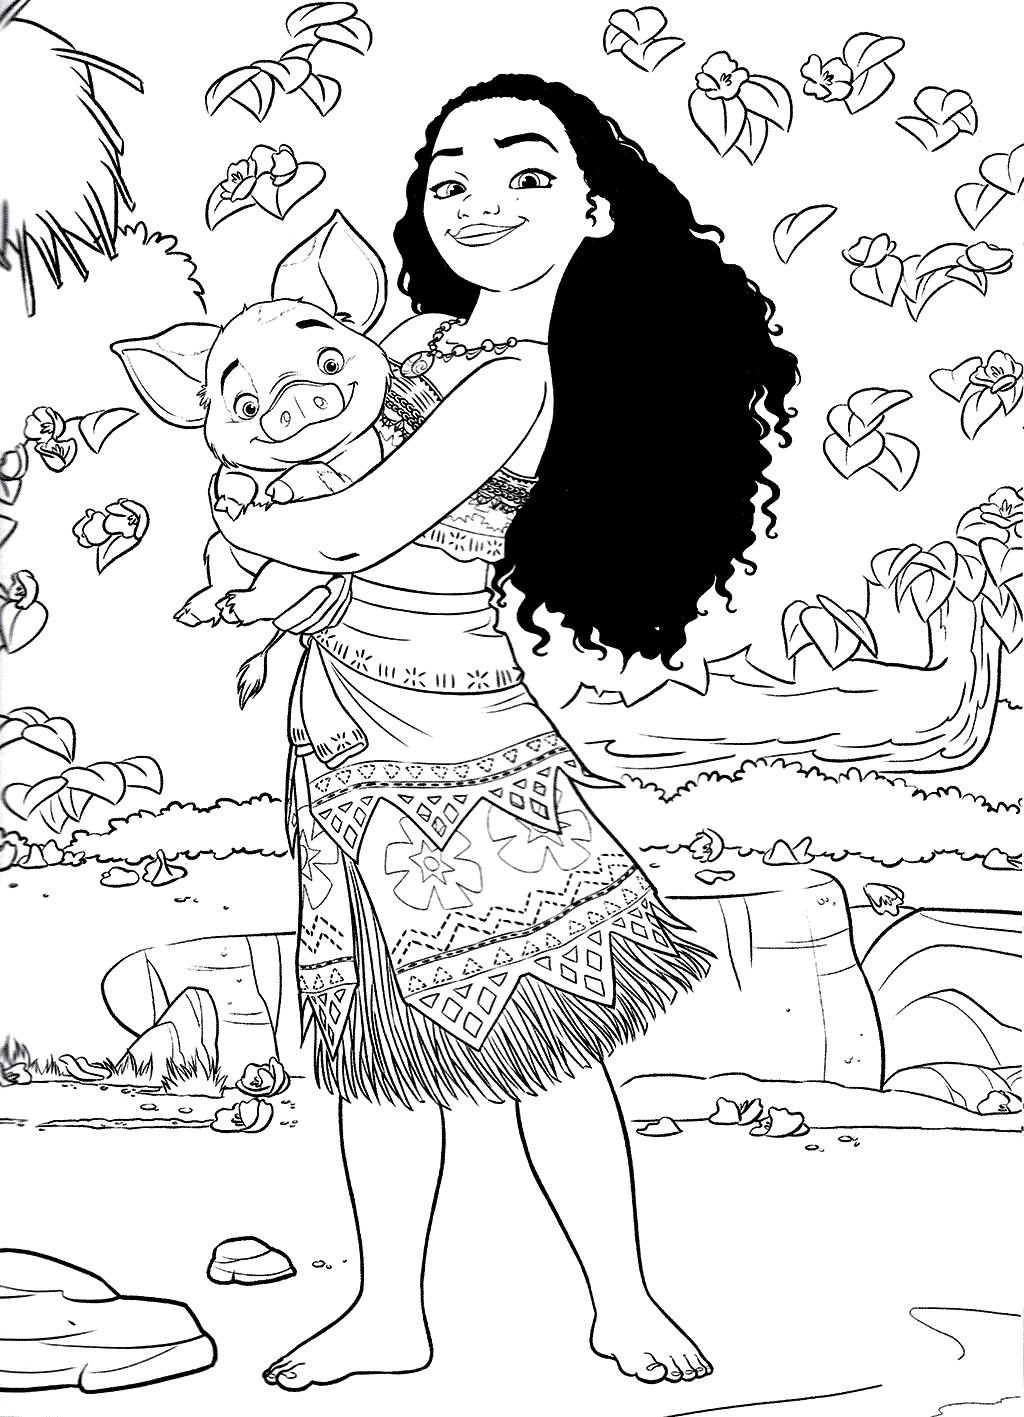 Top 10 Moana Coloring Pages Free Printables Moana Coloring